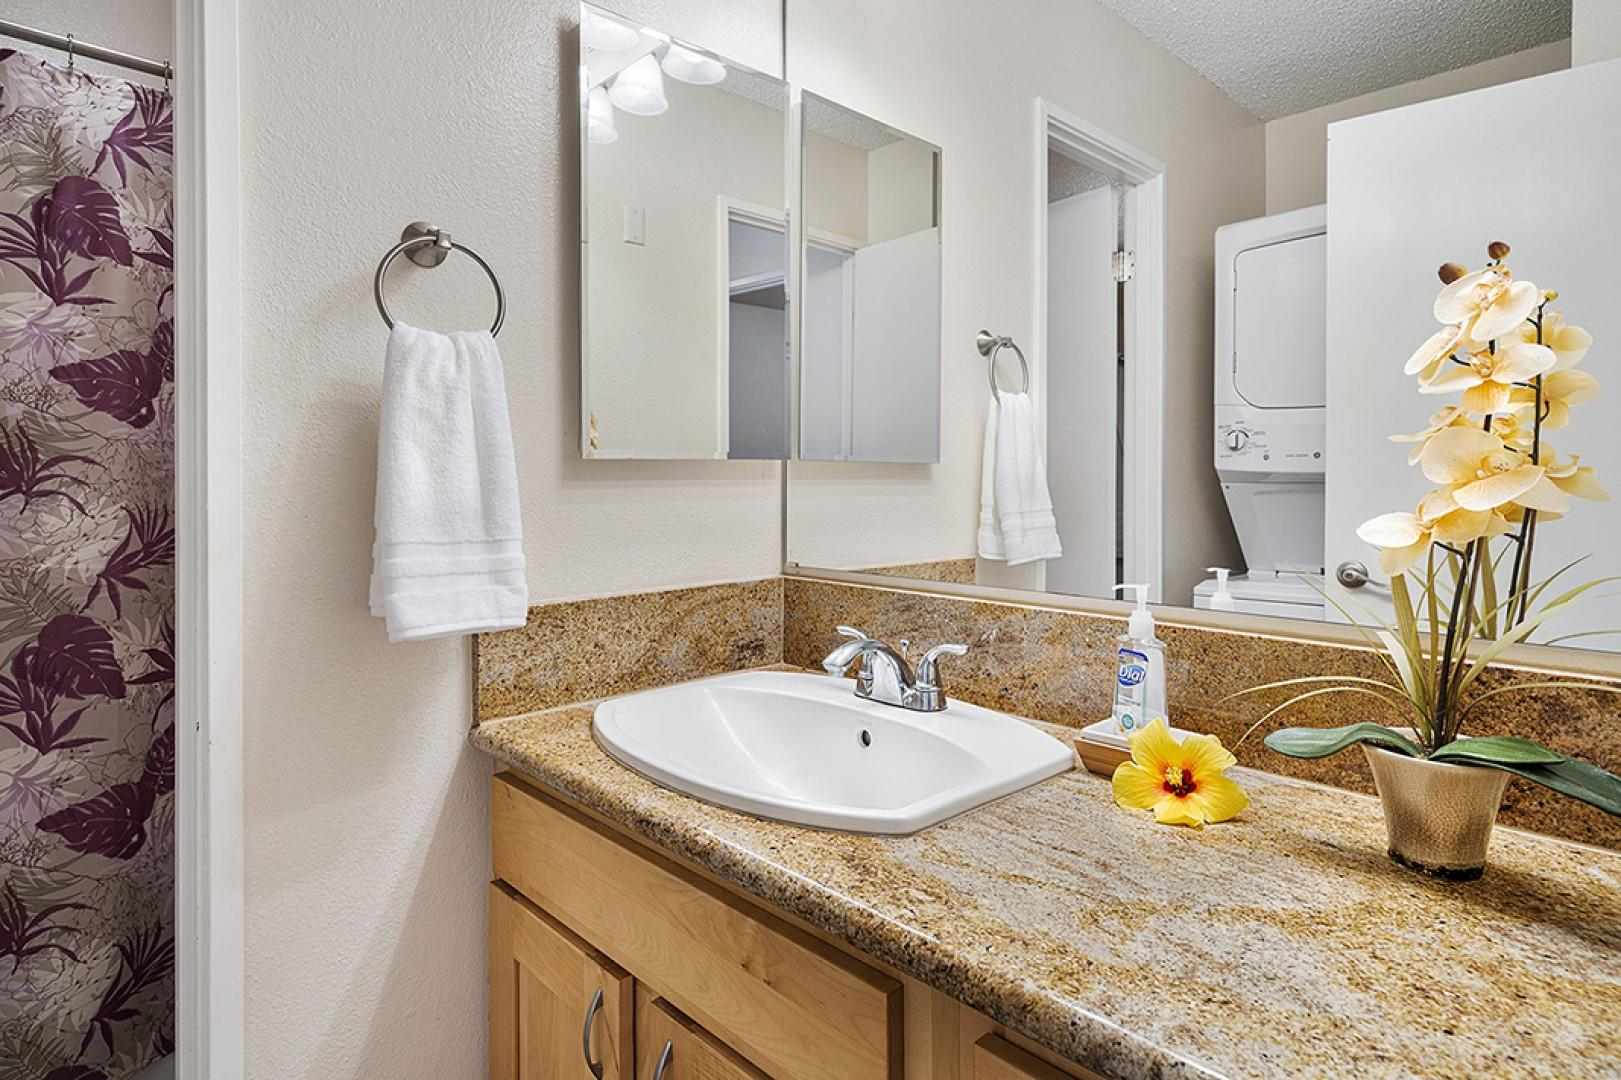 Guest bathroom with full sized Washer & Dryer